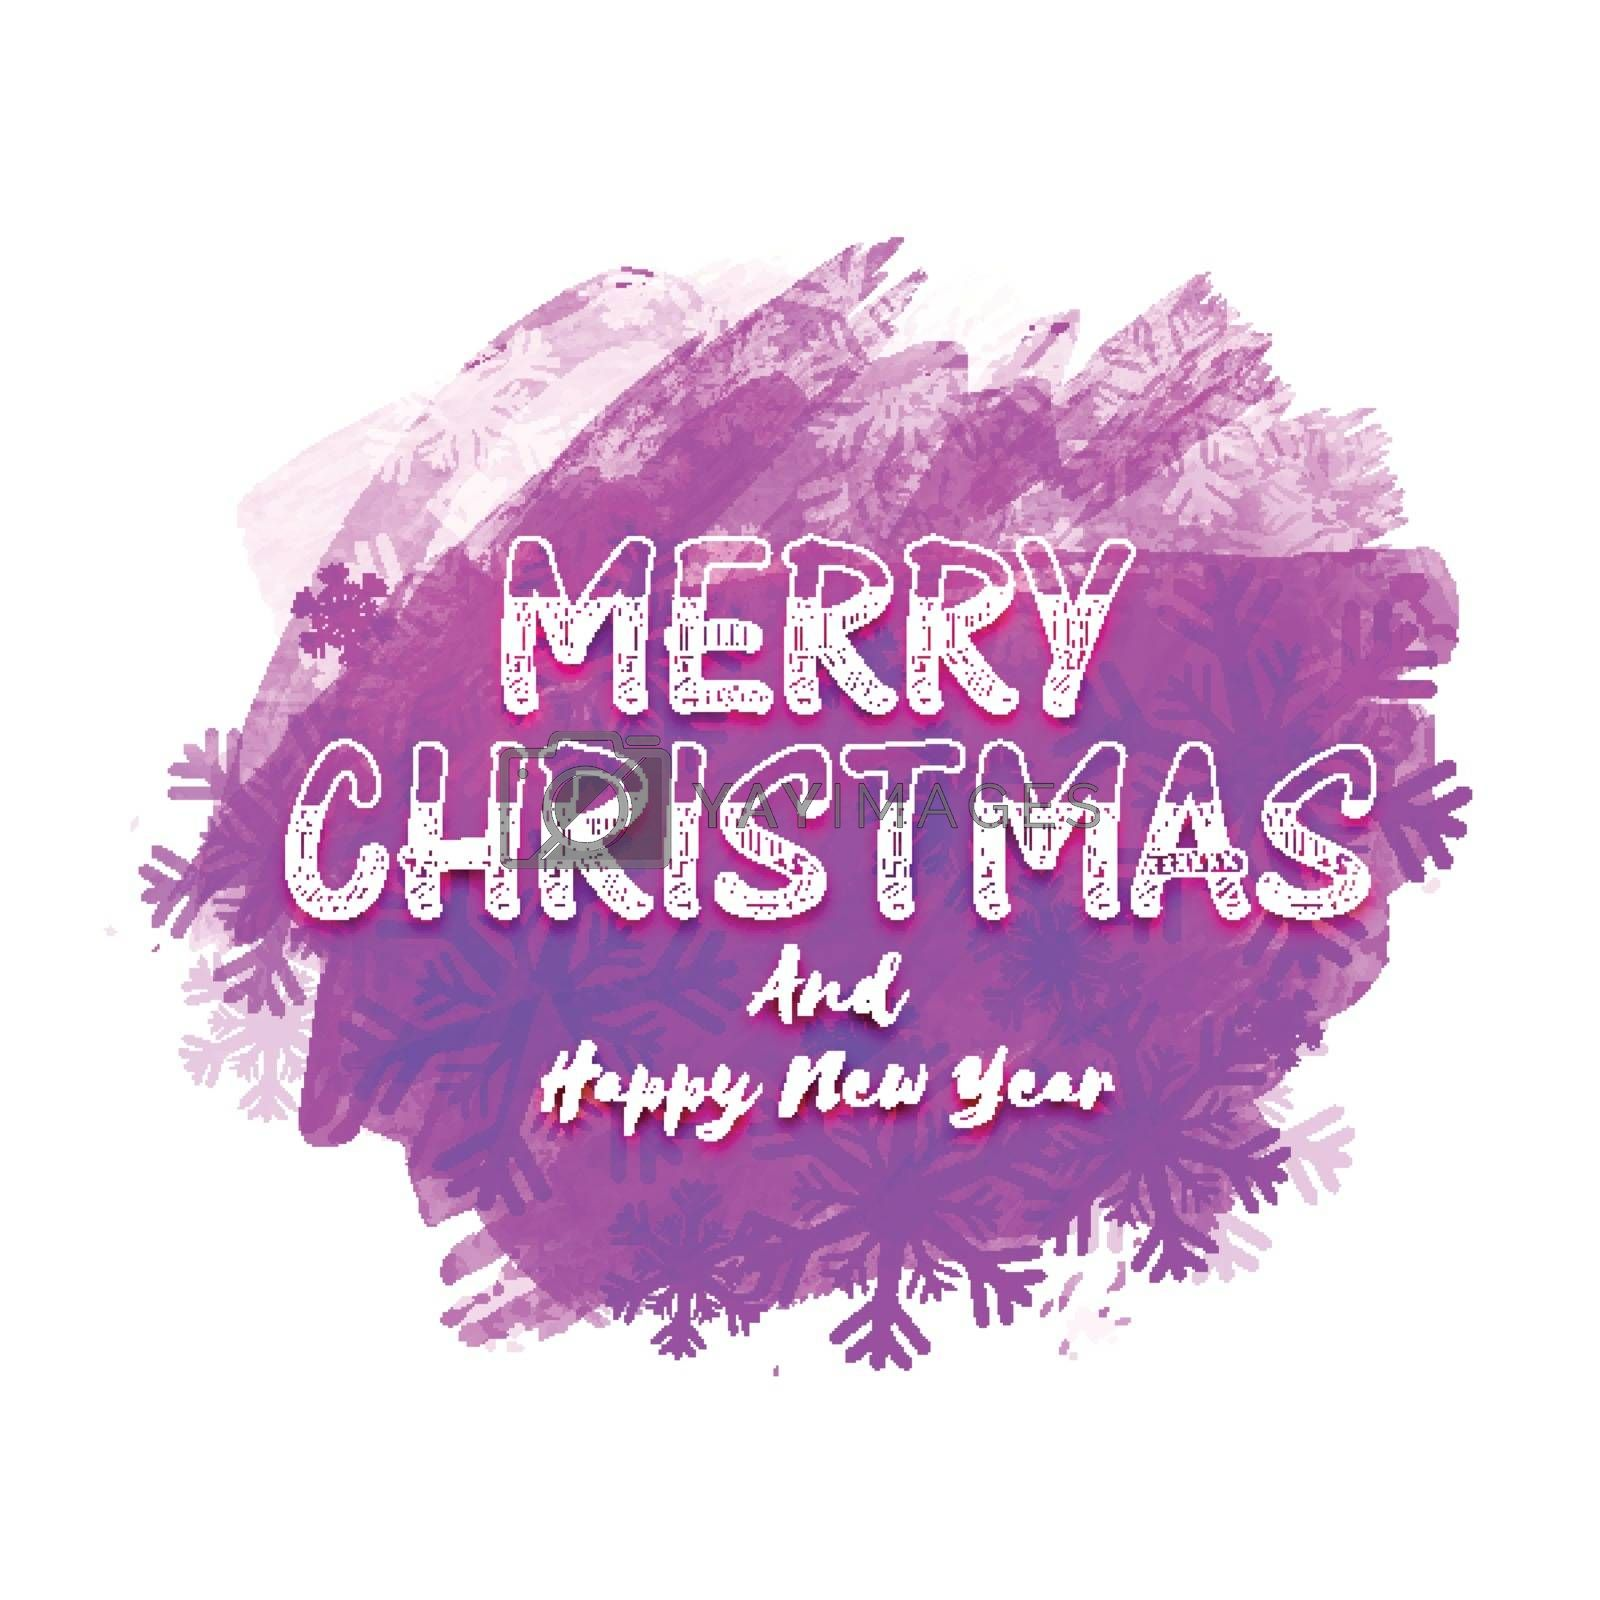 Merry Christmas and Happy New Year Party Poster, Banner design with abstract brush strokes and snowflakes decoration.